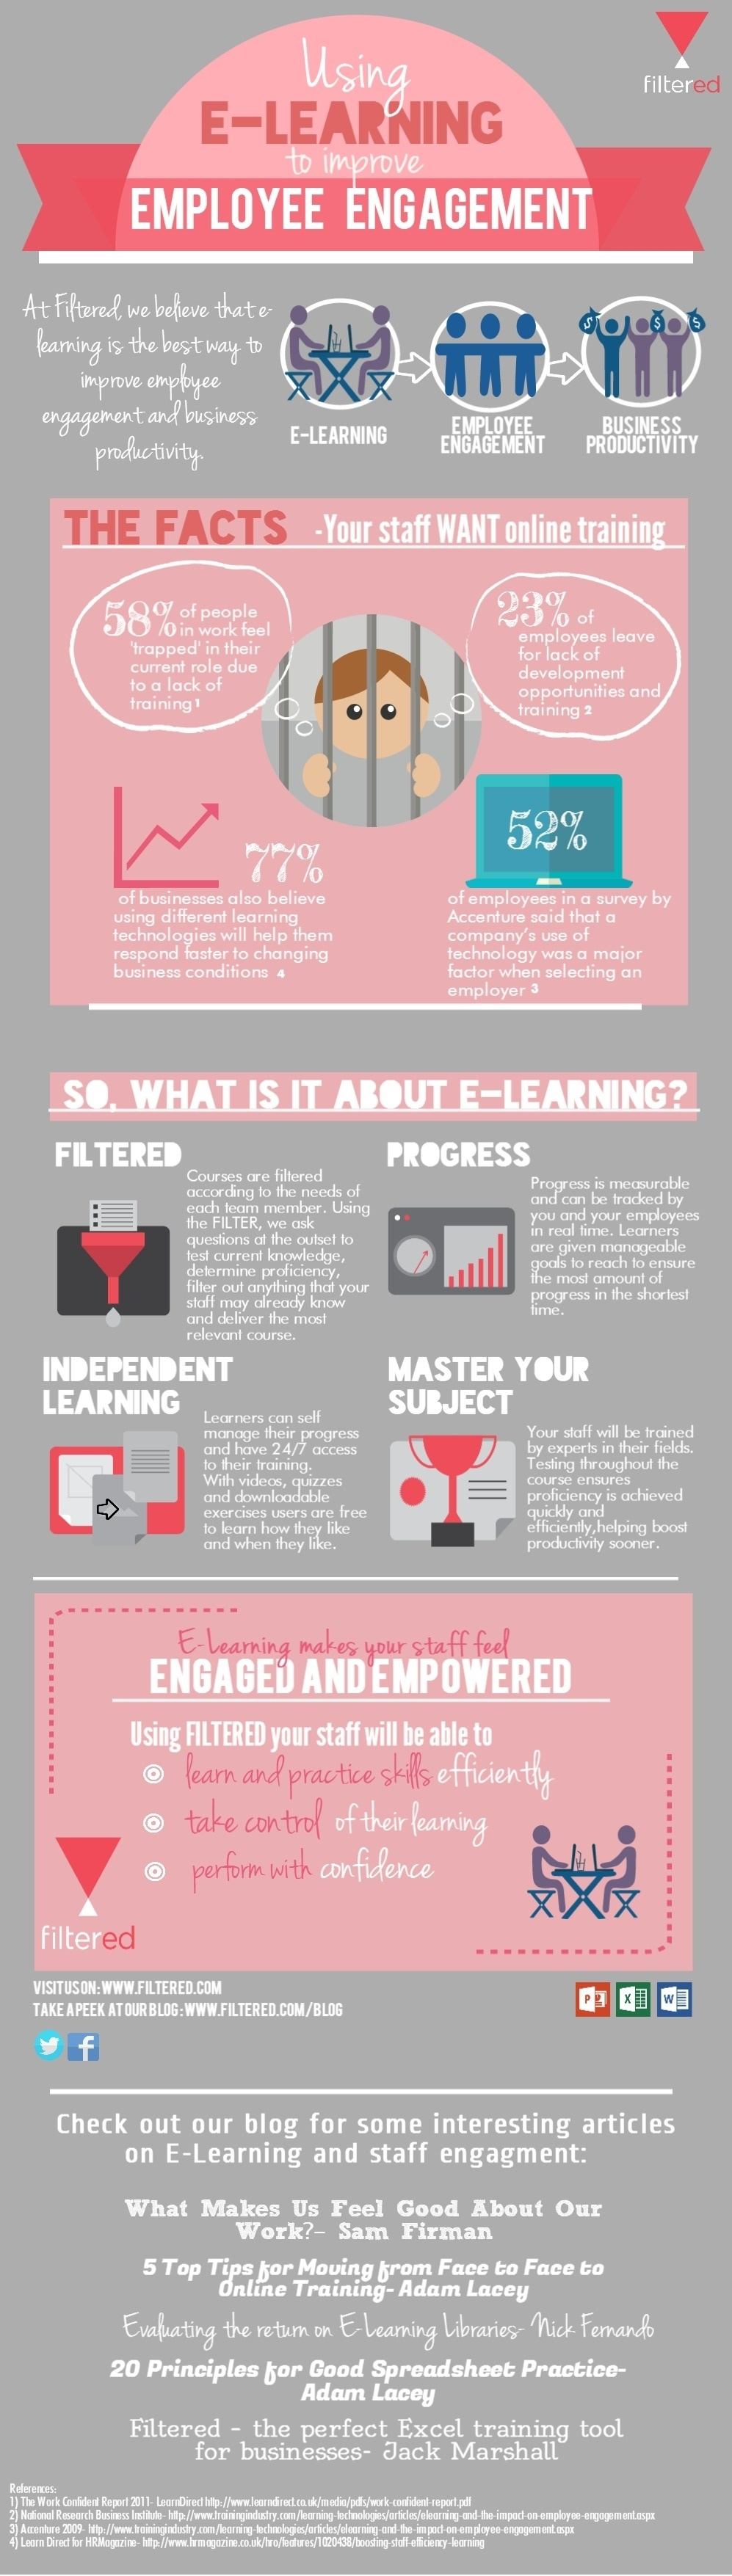 How To Use e-Learning To Improve Employee Engagement Infographic